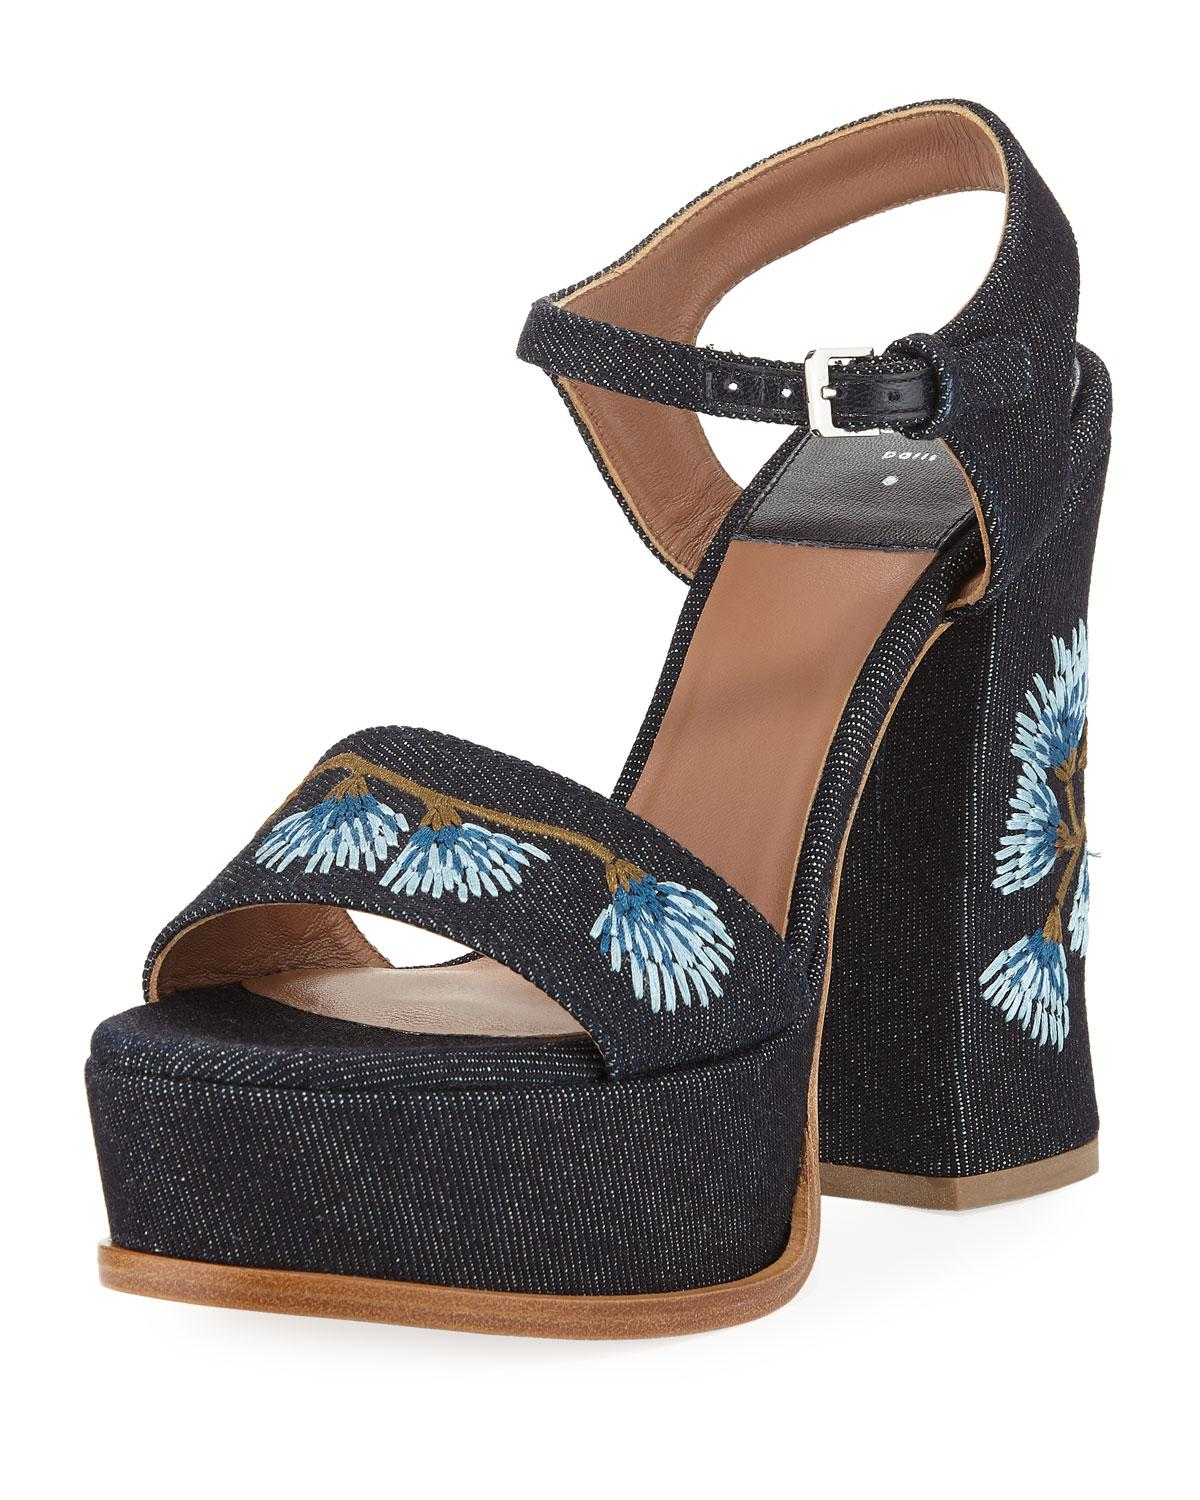 floral embroidered platform sandals - Brown Laurence Dacade 9E1WRe